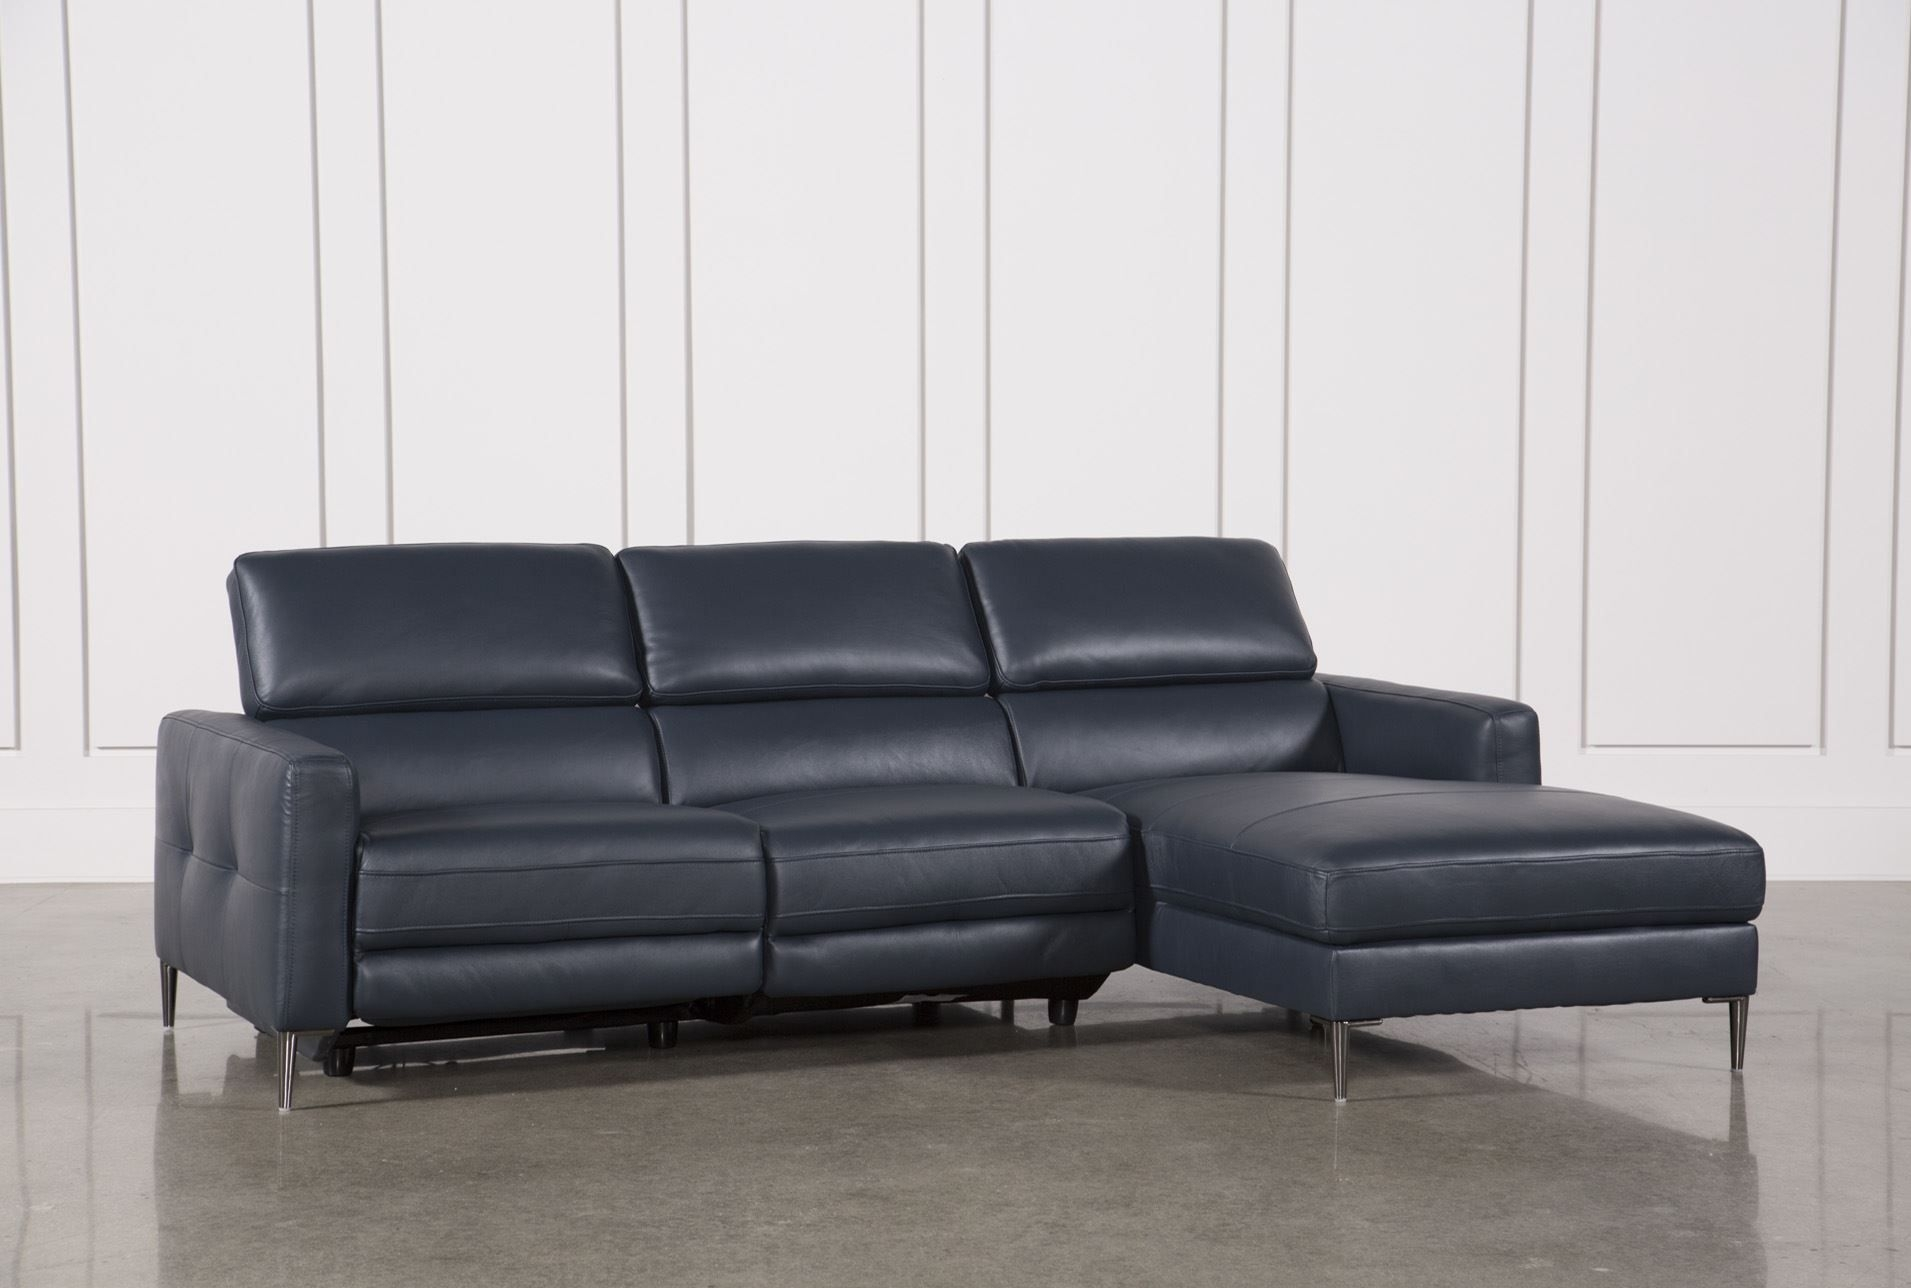 Tara Blue 2 Piece Right Facing Chaise Sofa | Chaise Sofa, Living Inside Tess 2 Piece Power Reclining Sectionals With Laf Chaise (View 5 of 25)